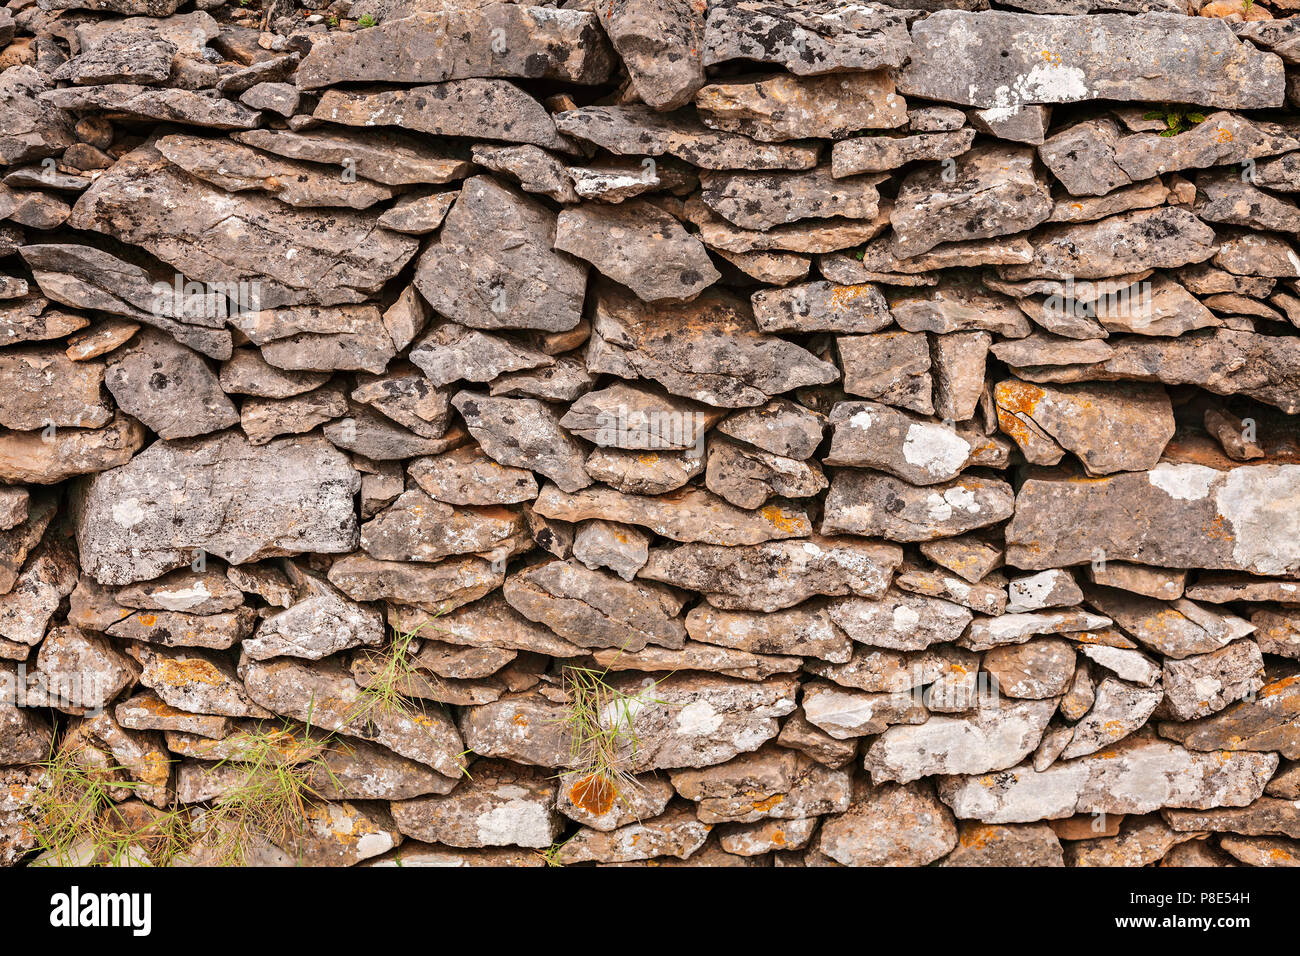 Old stone wall background texture. - Stock Image